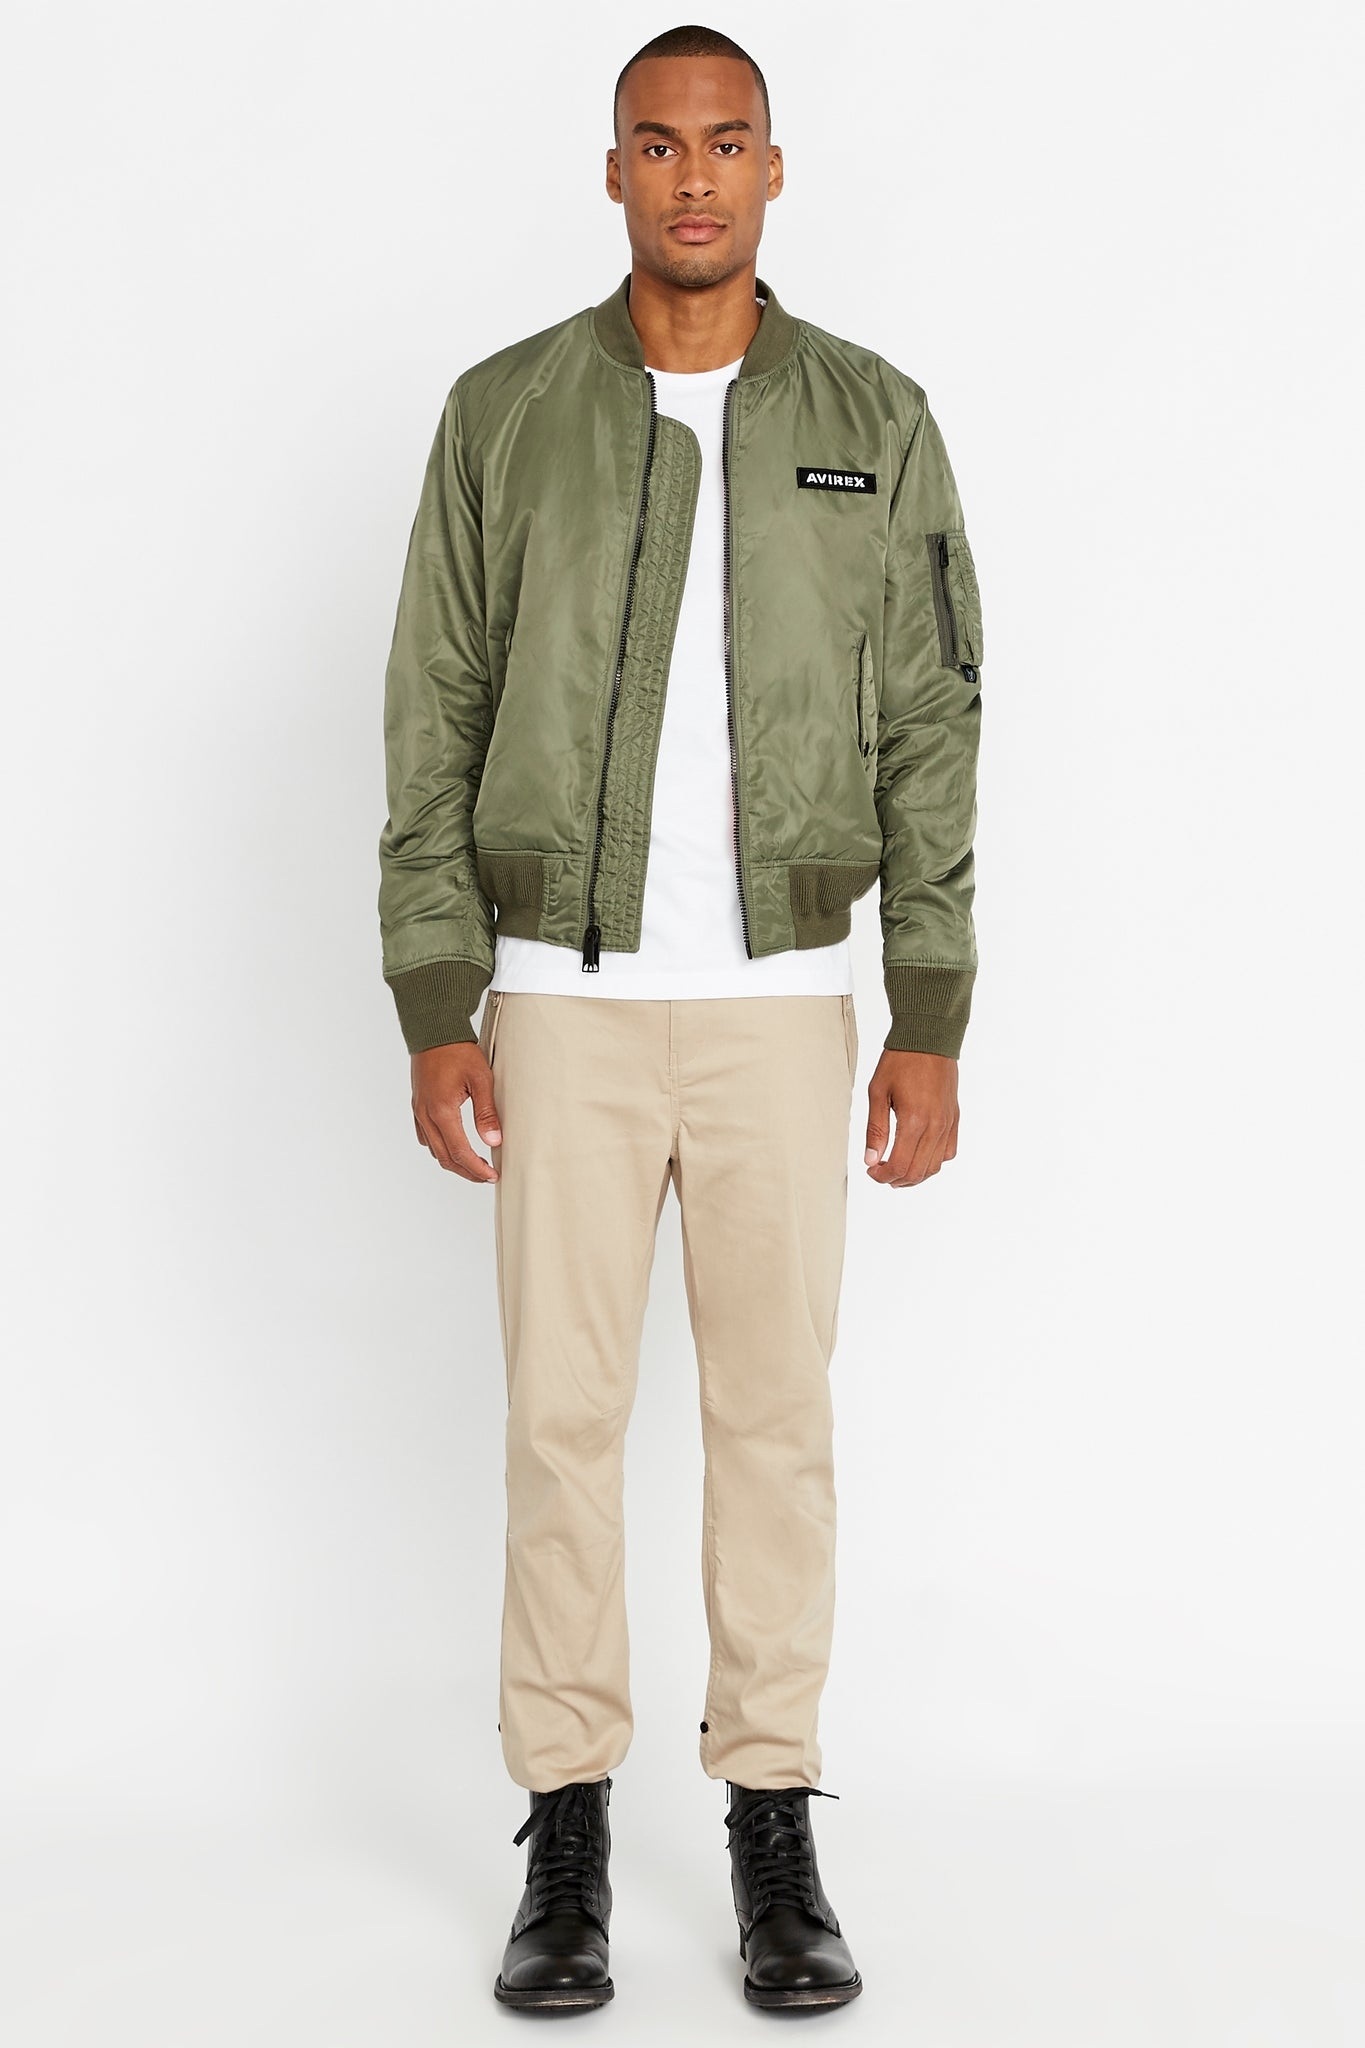 Full view of men wearing an open olive original aviation bomber nylon jacket with Iconic utility pocket on sleeve and two side pockets and light beige pants